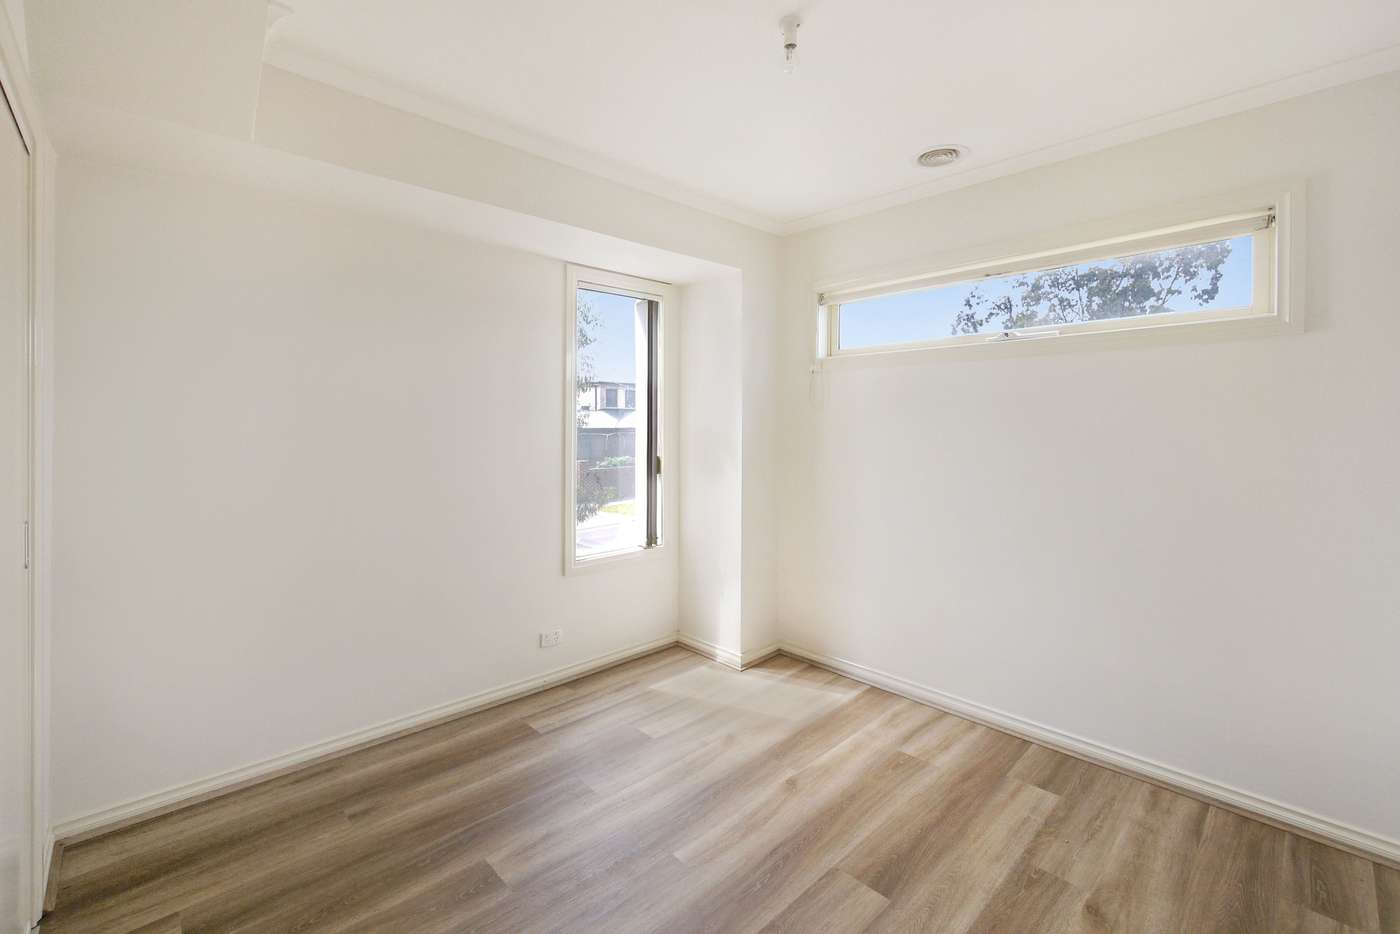 Sixth view of Homely townhouse listing, 5 Barwon Street, Glenroy VIC 3046